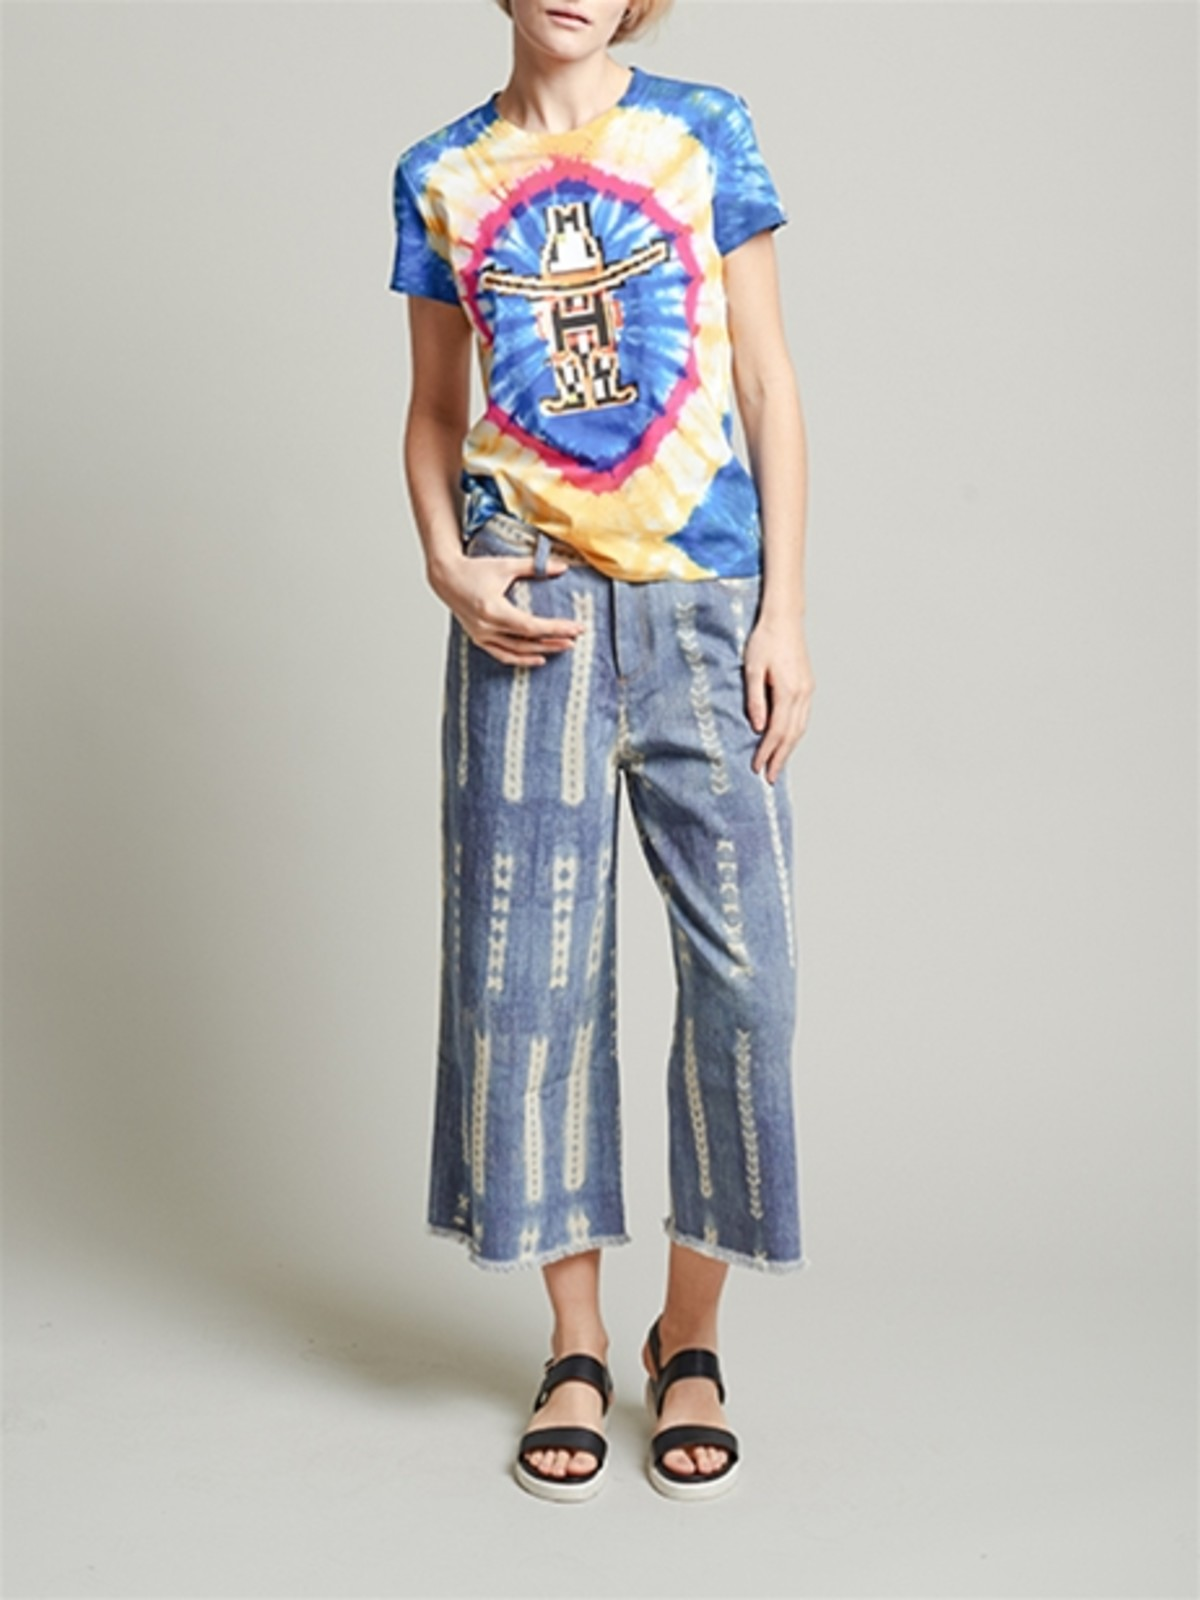 728347b0d0e814 Vivienne Tam s Houston-inspired fashion collection debuts online ...